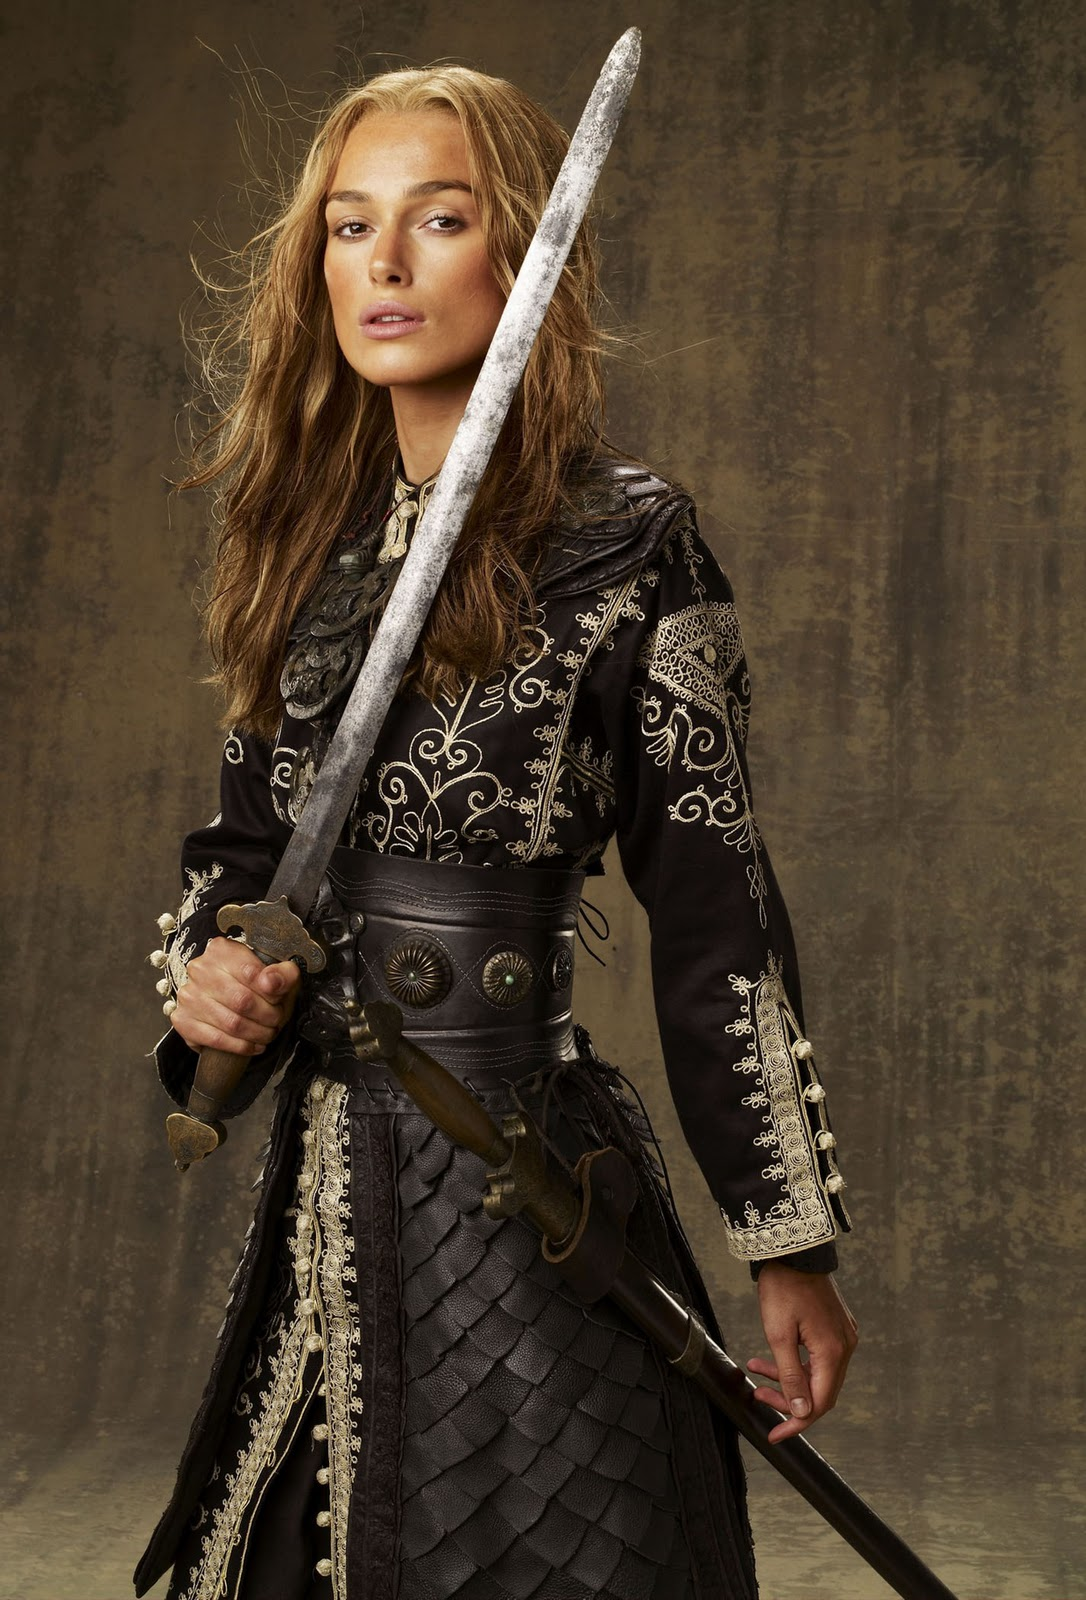 Celebrities, Movies and Games: Keira Knightley as ...